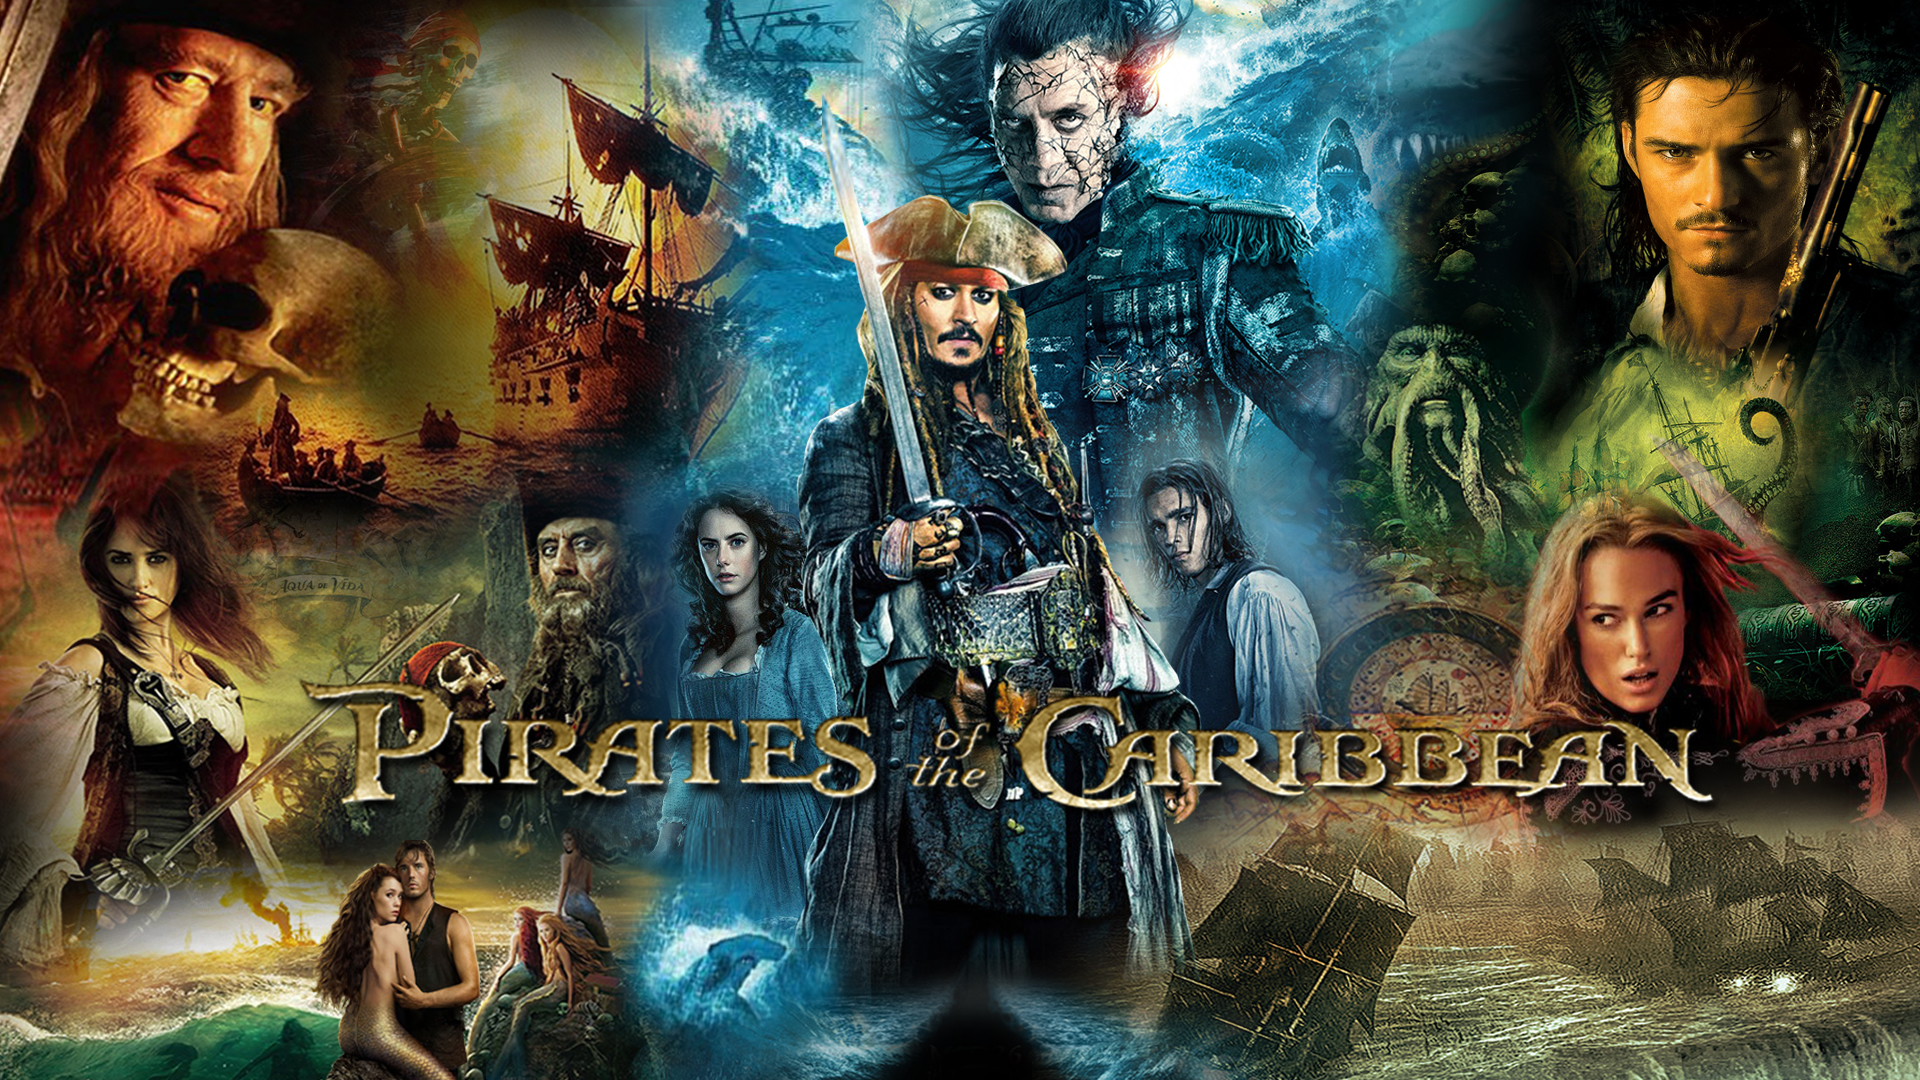 Pirates Of The Caribbean Wallpaper Tumblr